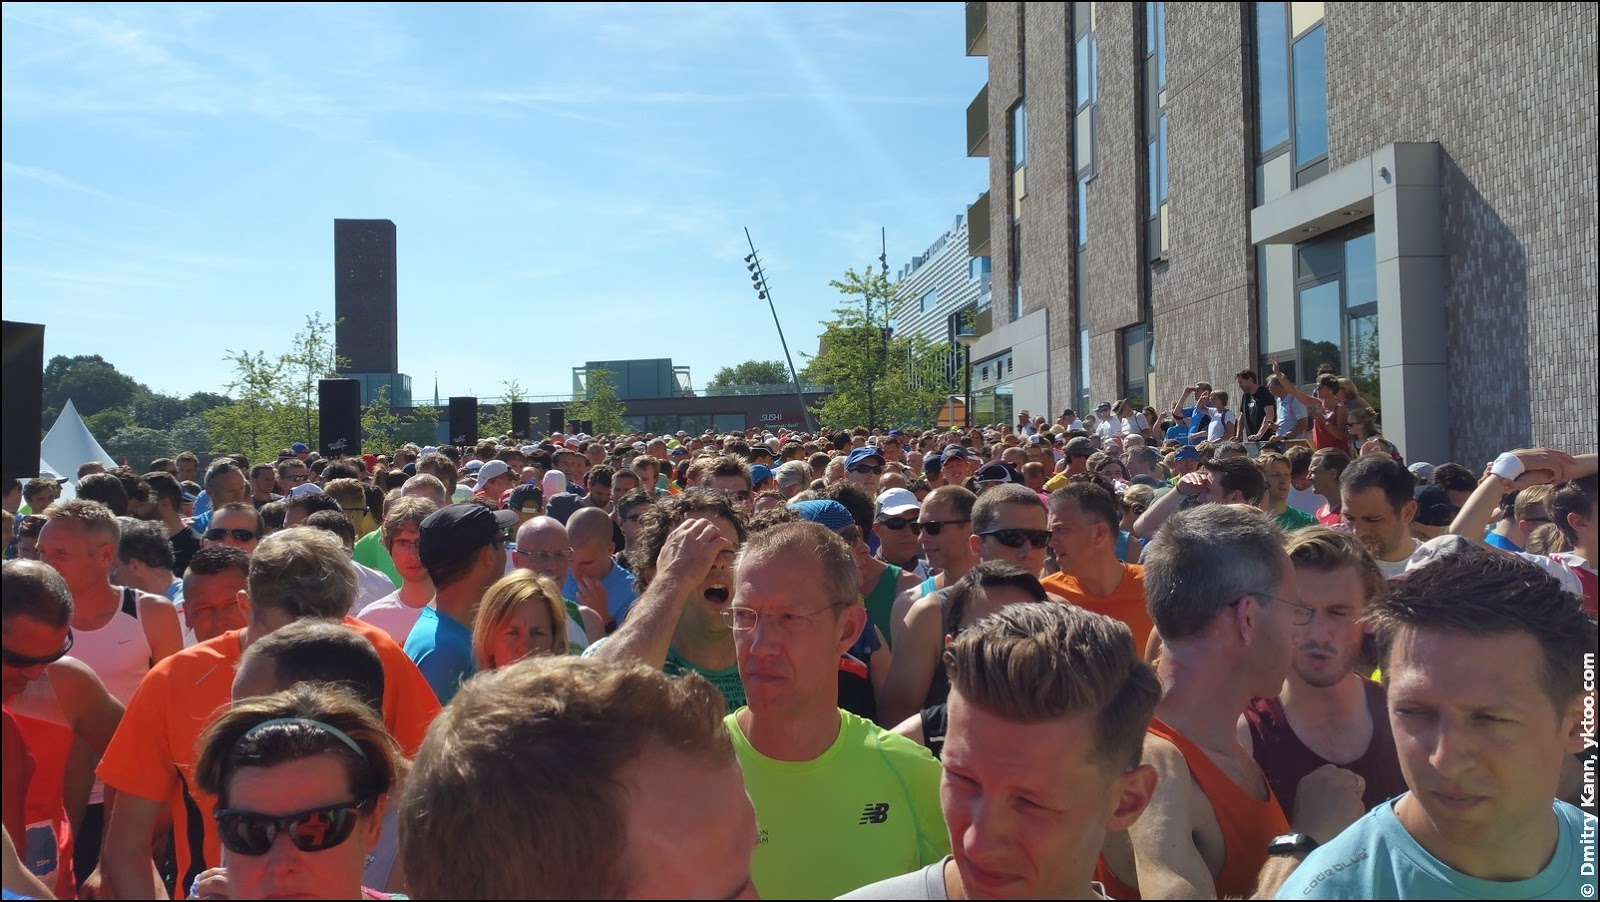 The crowd at the start.